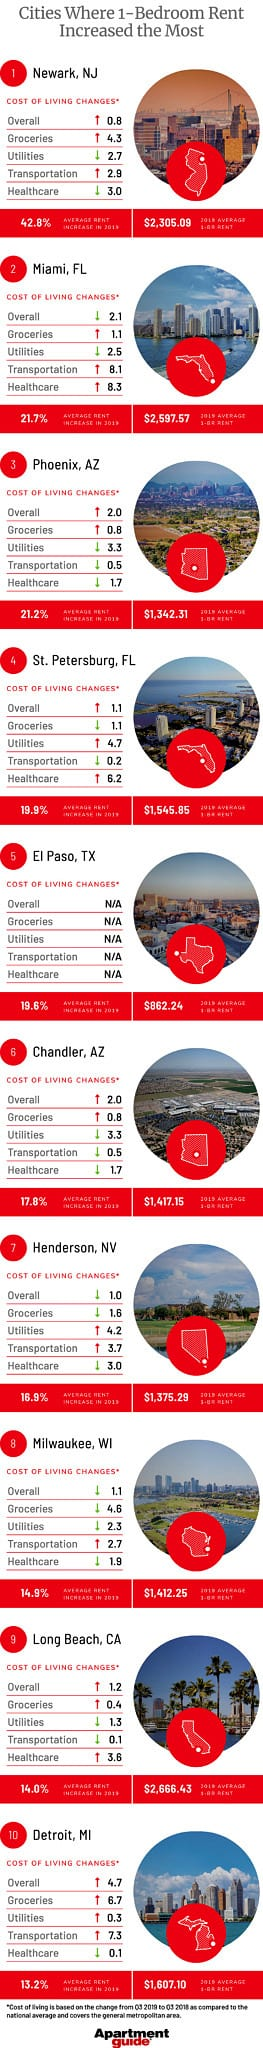 infographic showing 10 cities where one-bedroom rent increased the most in 2019